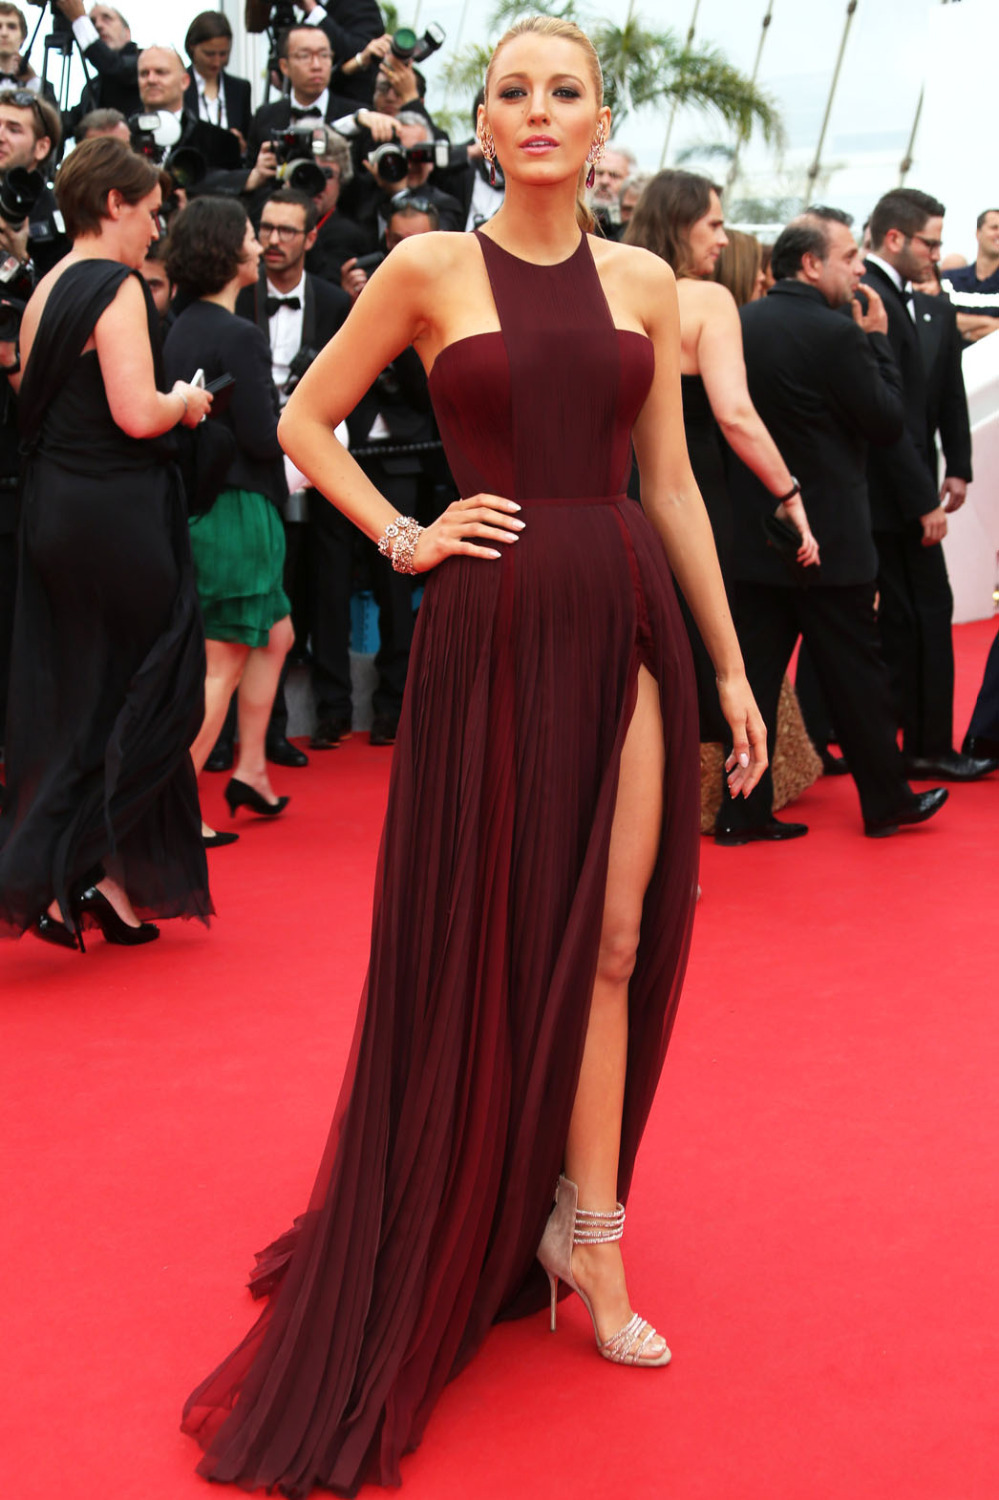 Blake lively dress burgundy red carpet dress celebrity gowns 2017 vestido de festa longos in - Dresses from the red carpet ...